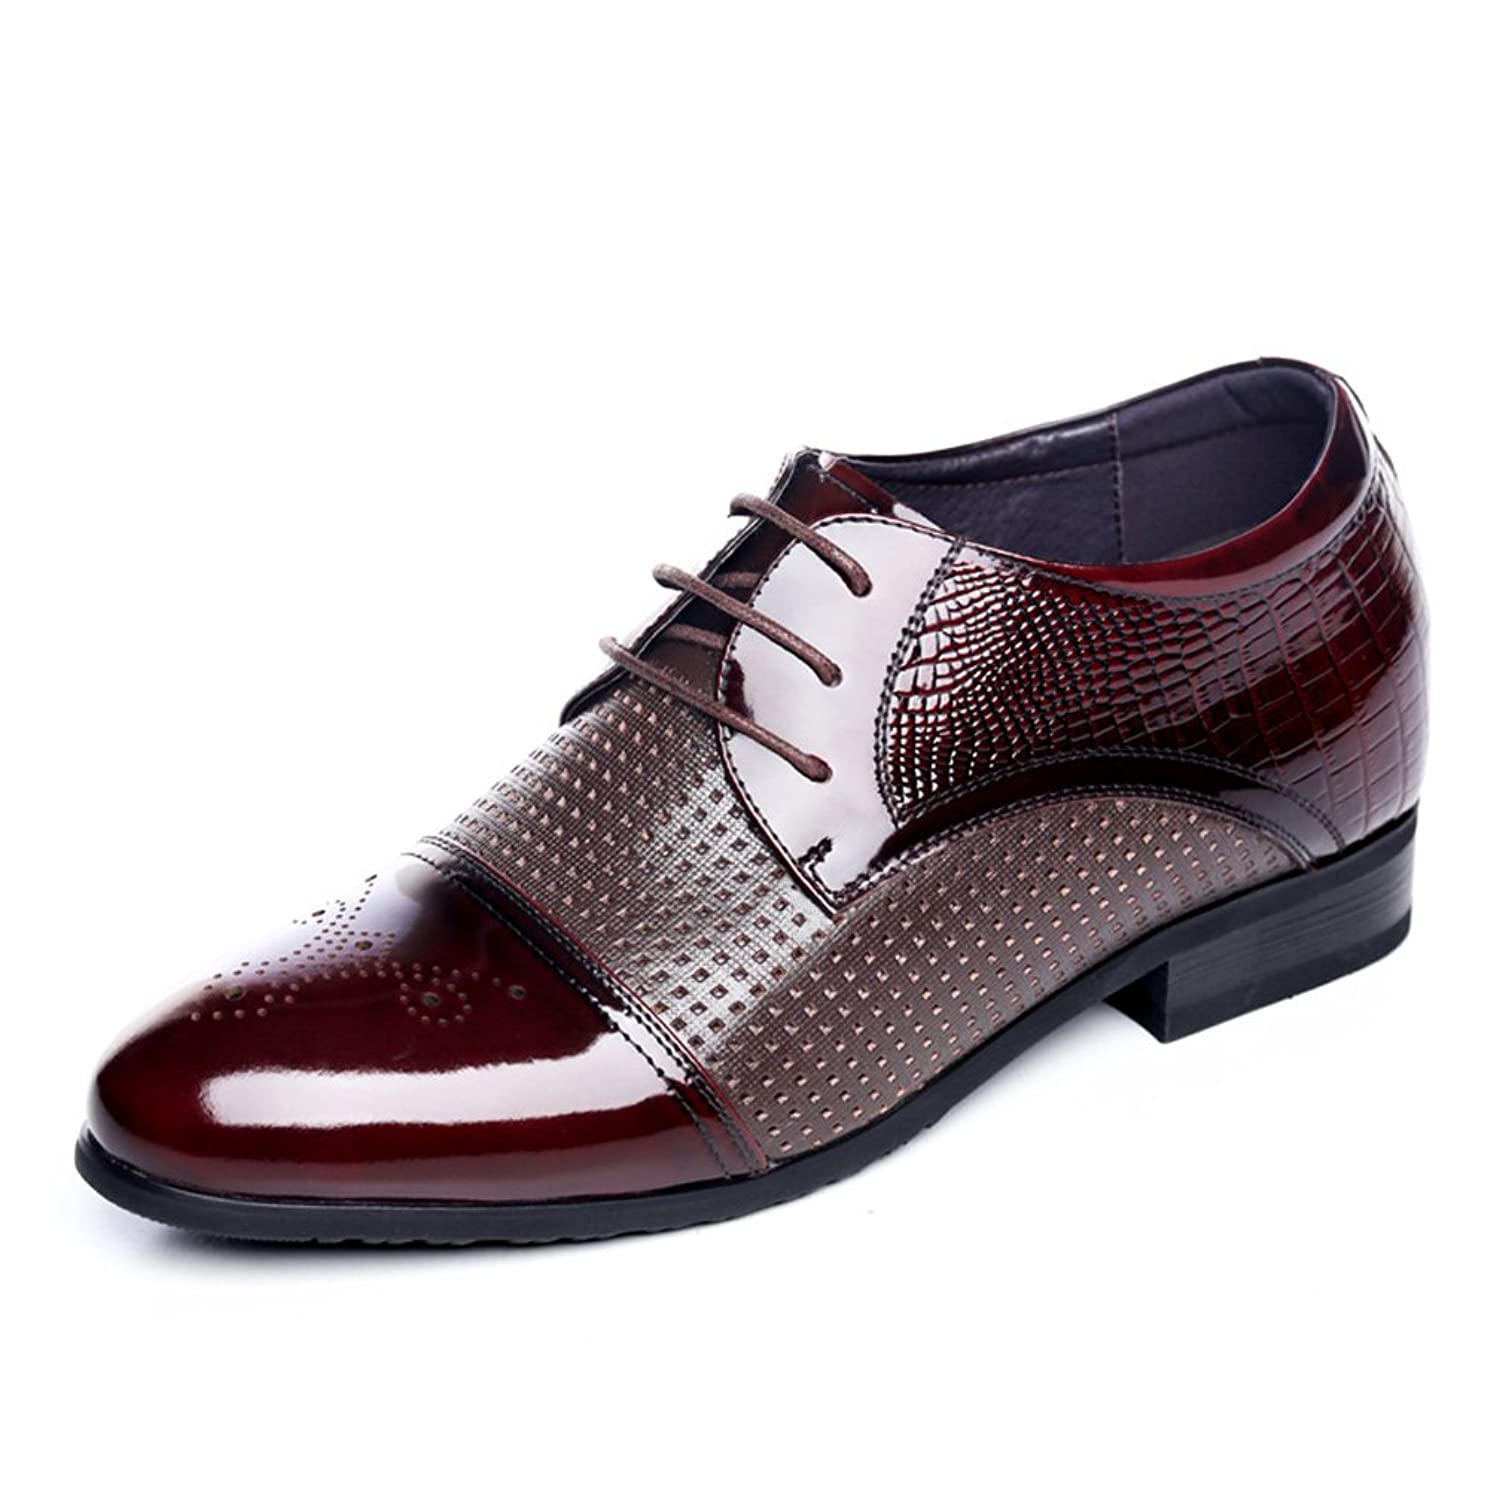 2.56 Inches Taller - Men's Height Increasing Elevator Oxfords-Brown Breathable Leather Dress Shoes